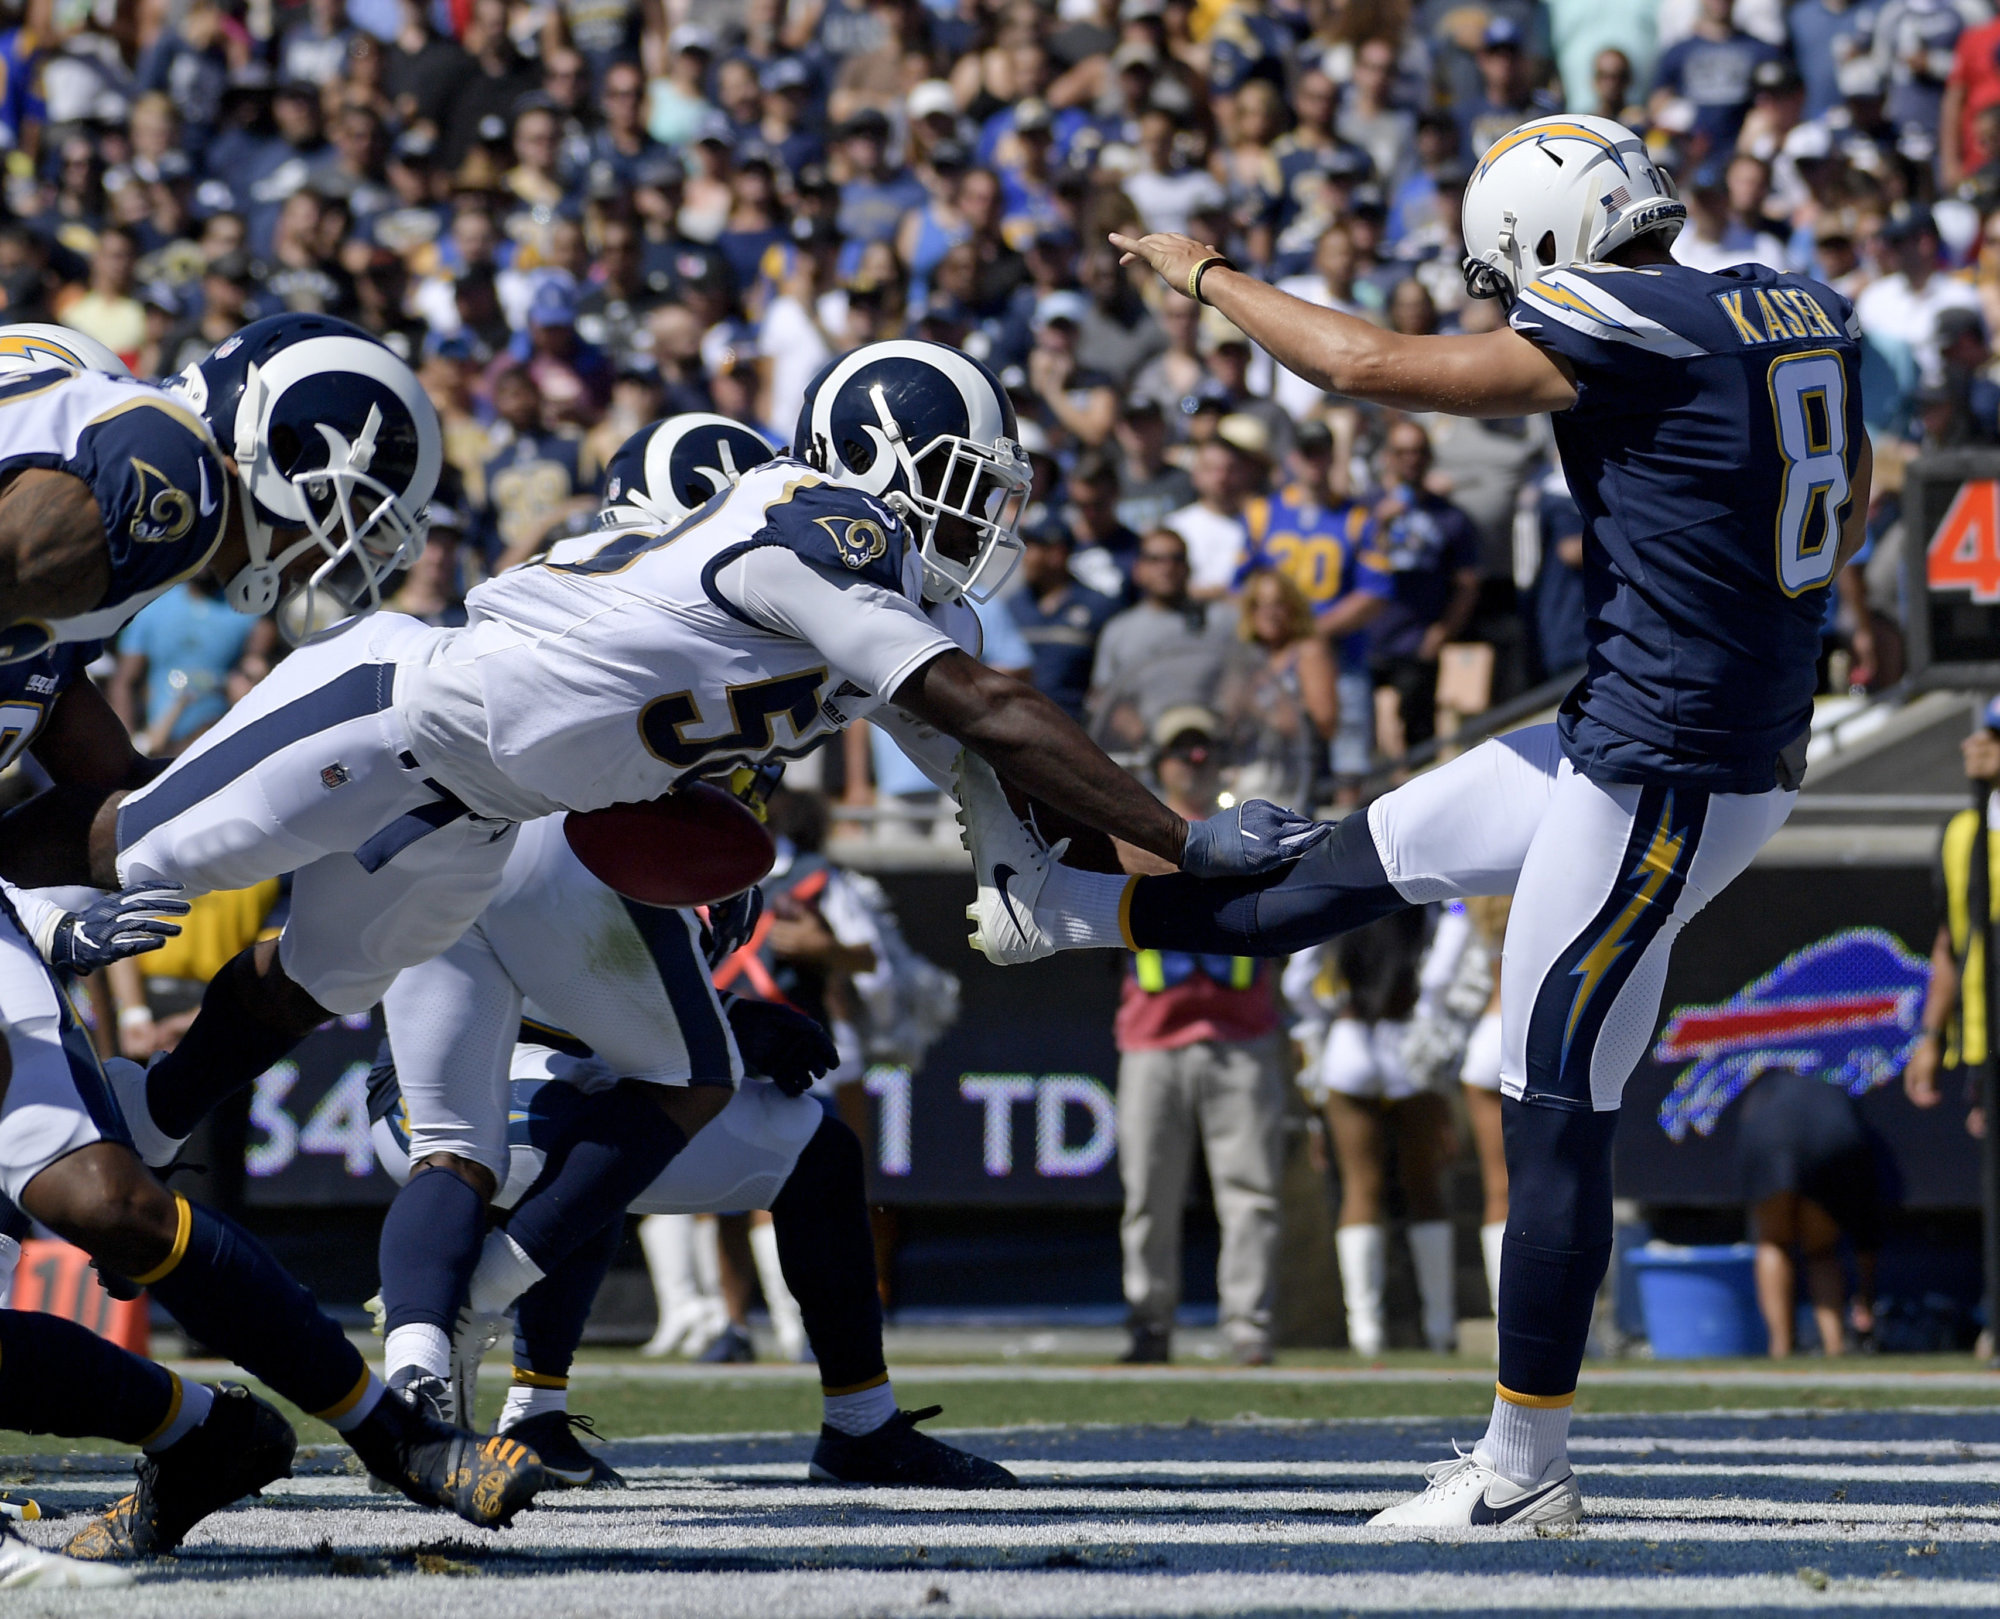 Los Angeles Rams linebacker Cory Littleton blocks a punt by Los Angeles Chargers punter Drew Kaser in the end zone during the first half in an NFL football game Sunday, Sept. 23, 2018, in Los Angeles. (AP Photo/Mark J. Terrill)